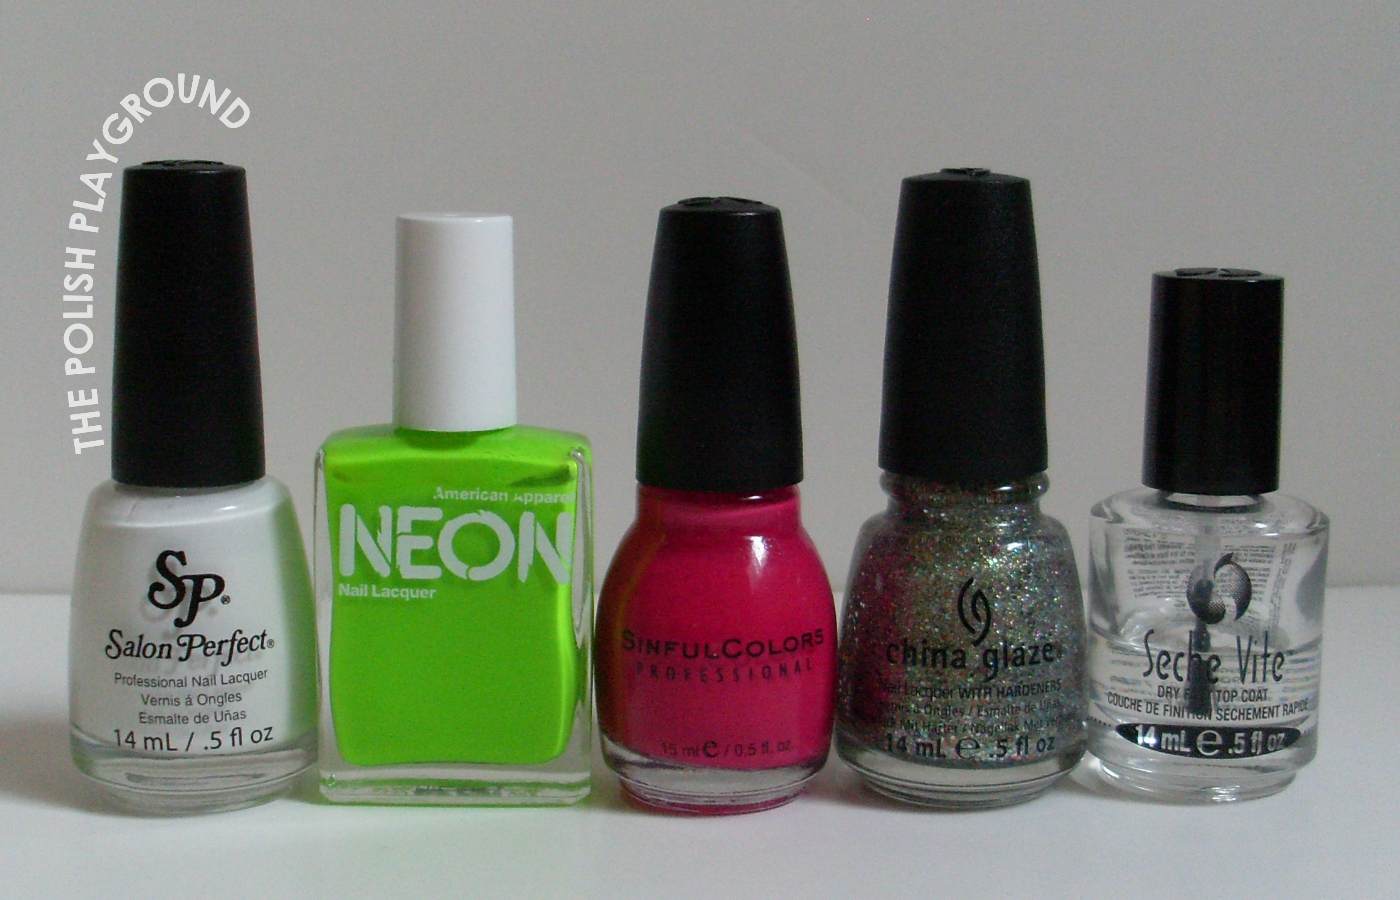 Salon Perfect, American Apparel, Sinful Colors, China Glaze, Seche Vite